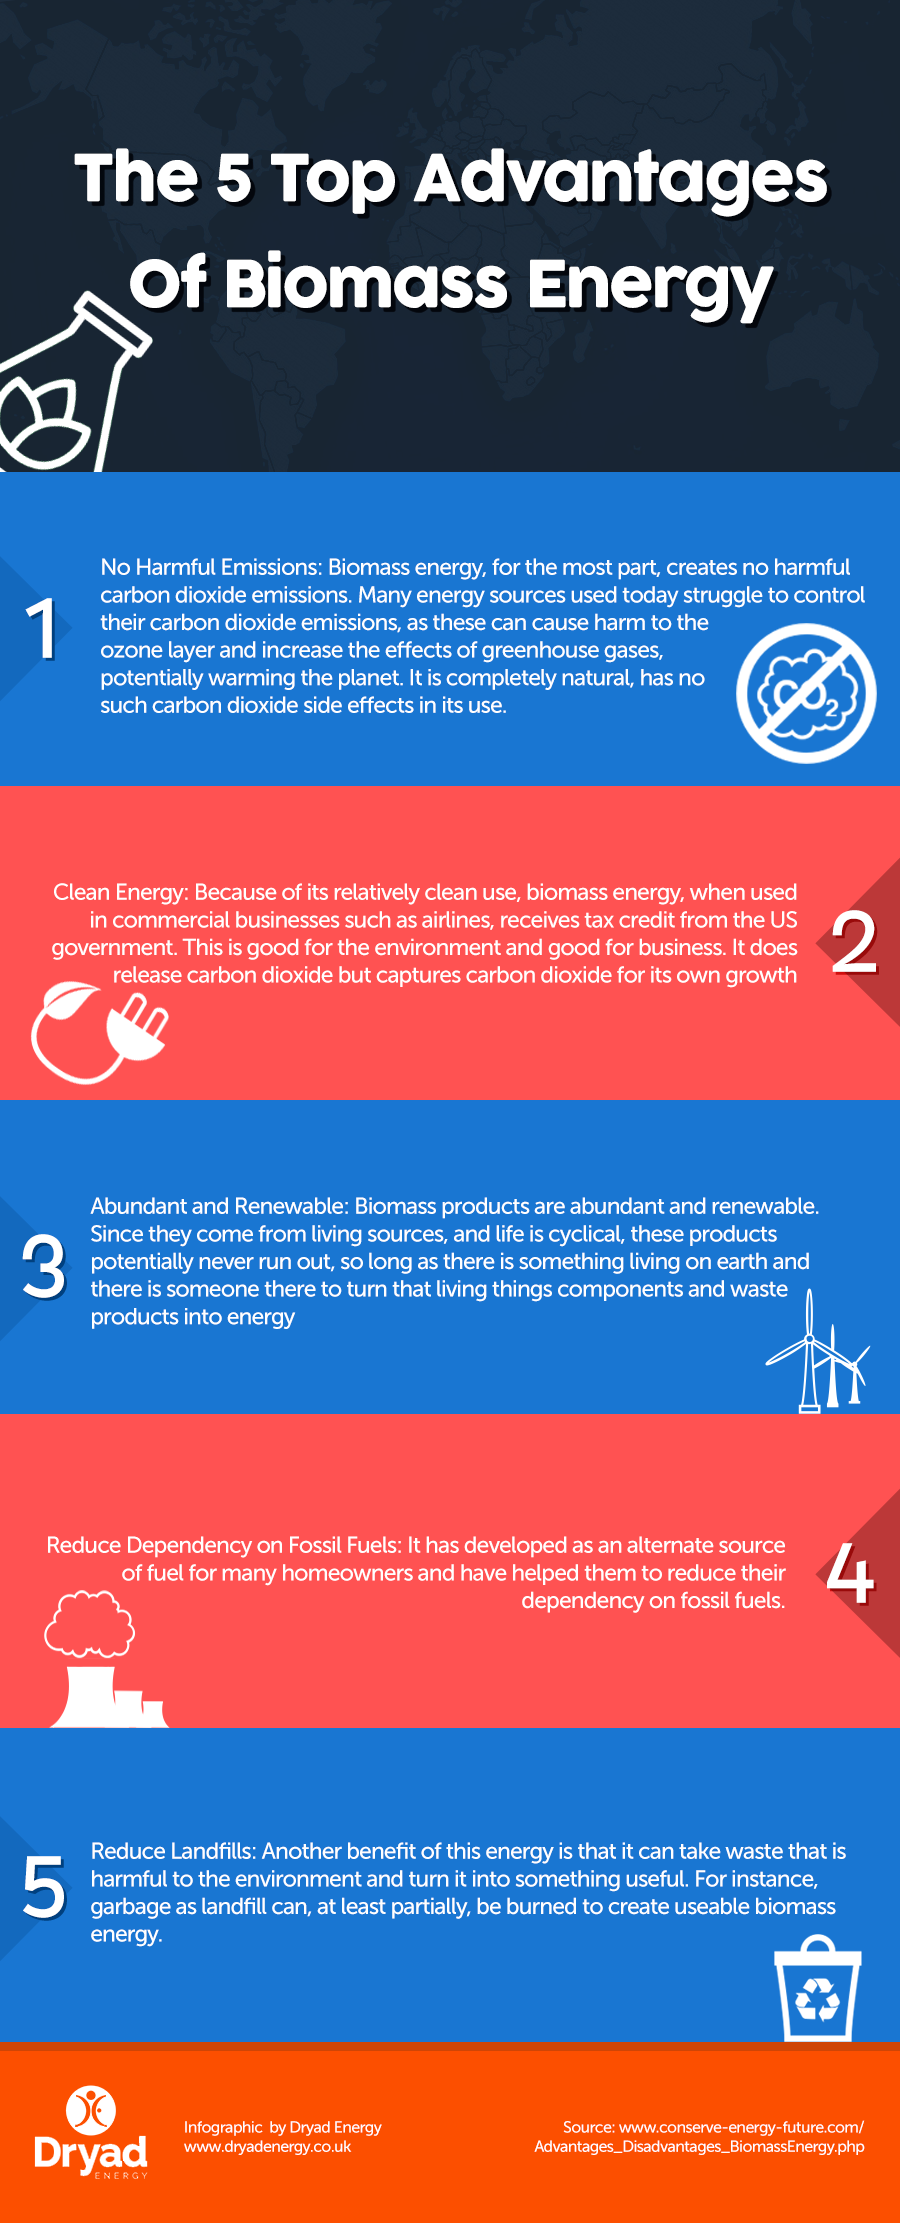 The 5 Top Advantages Of Biomass Energy